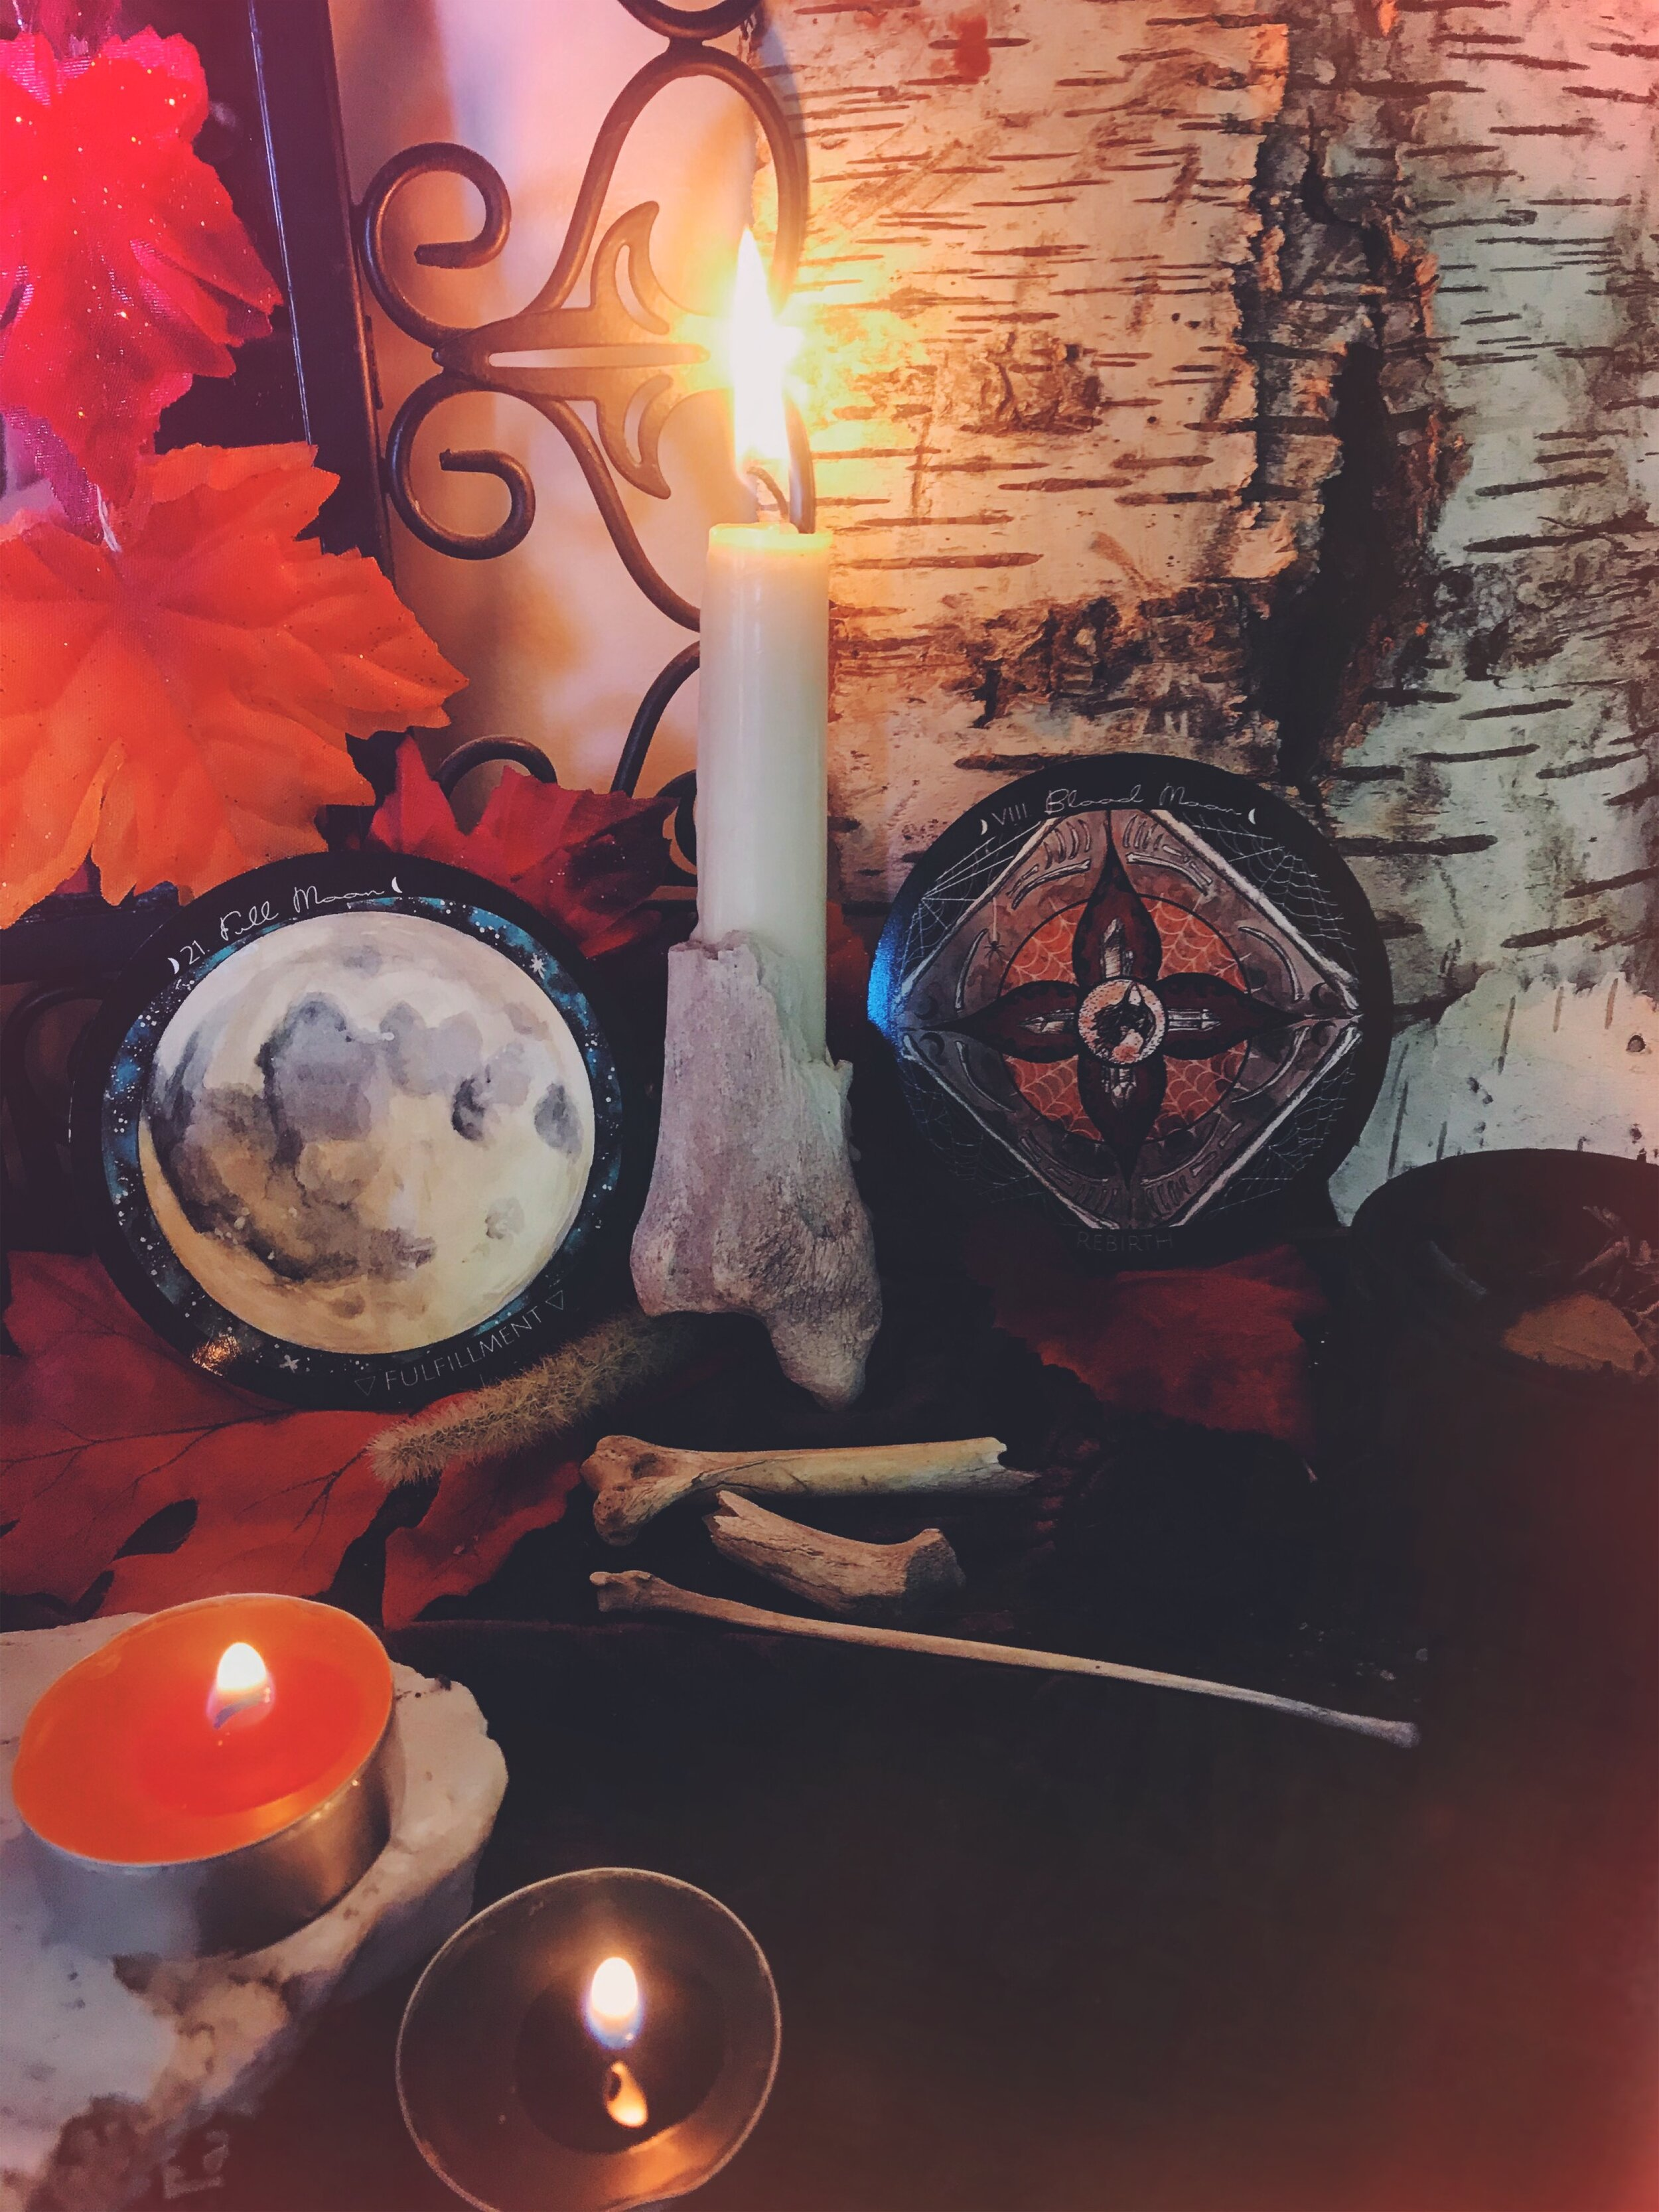 Full Blood Moon in Aries Spell to Summon the Spirit of your loved ones and ancestors for Samhain